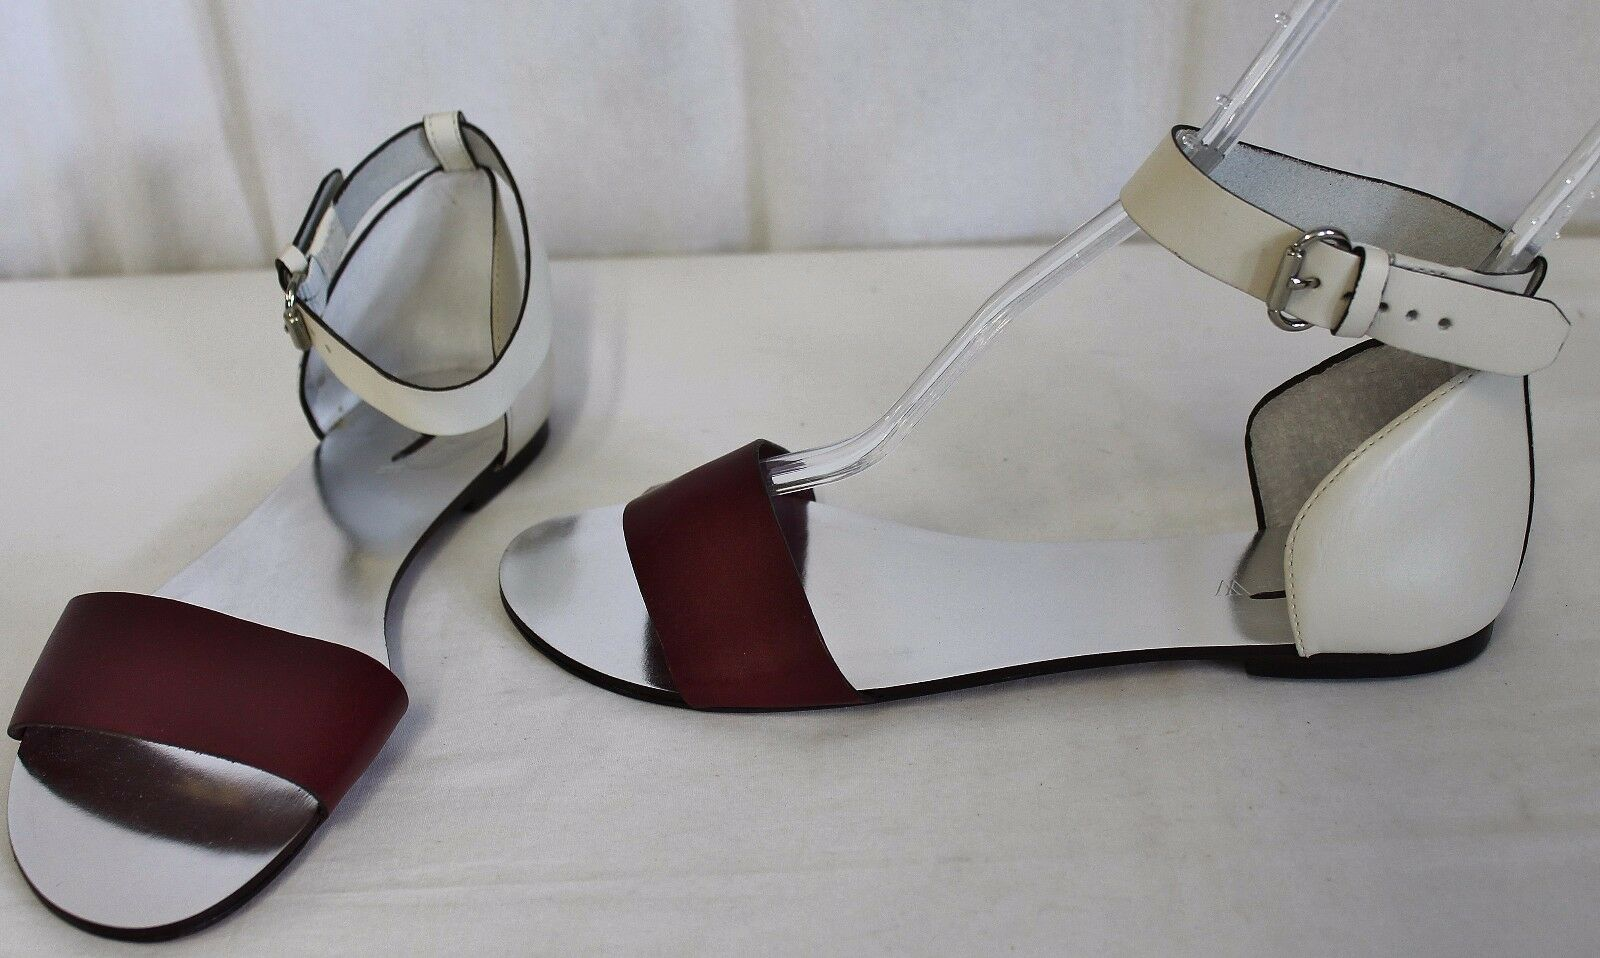 J CREW MARBELLA COLORBLOCK SANDALS BURGUNDY SIZE 8.5 B6657